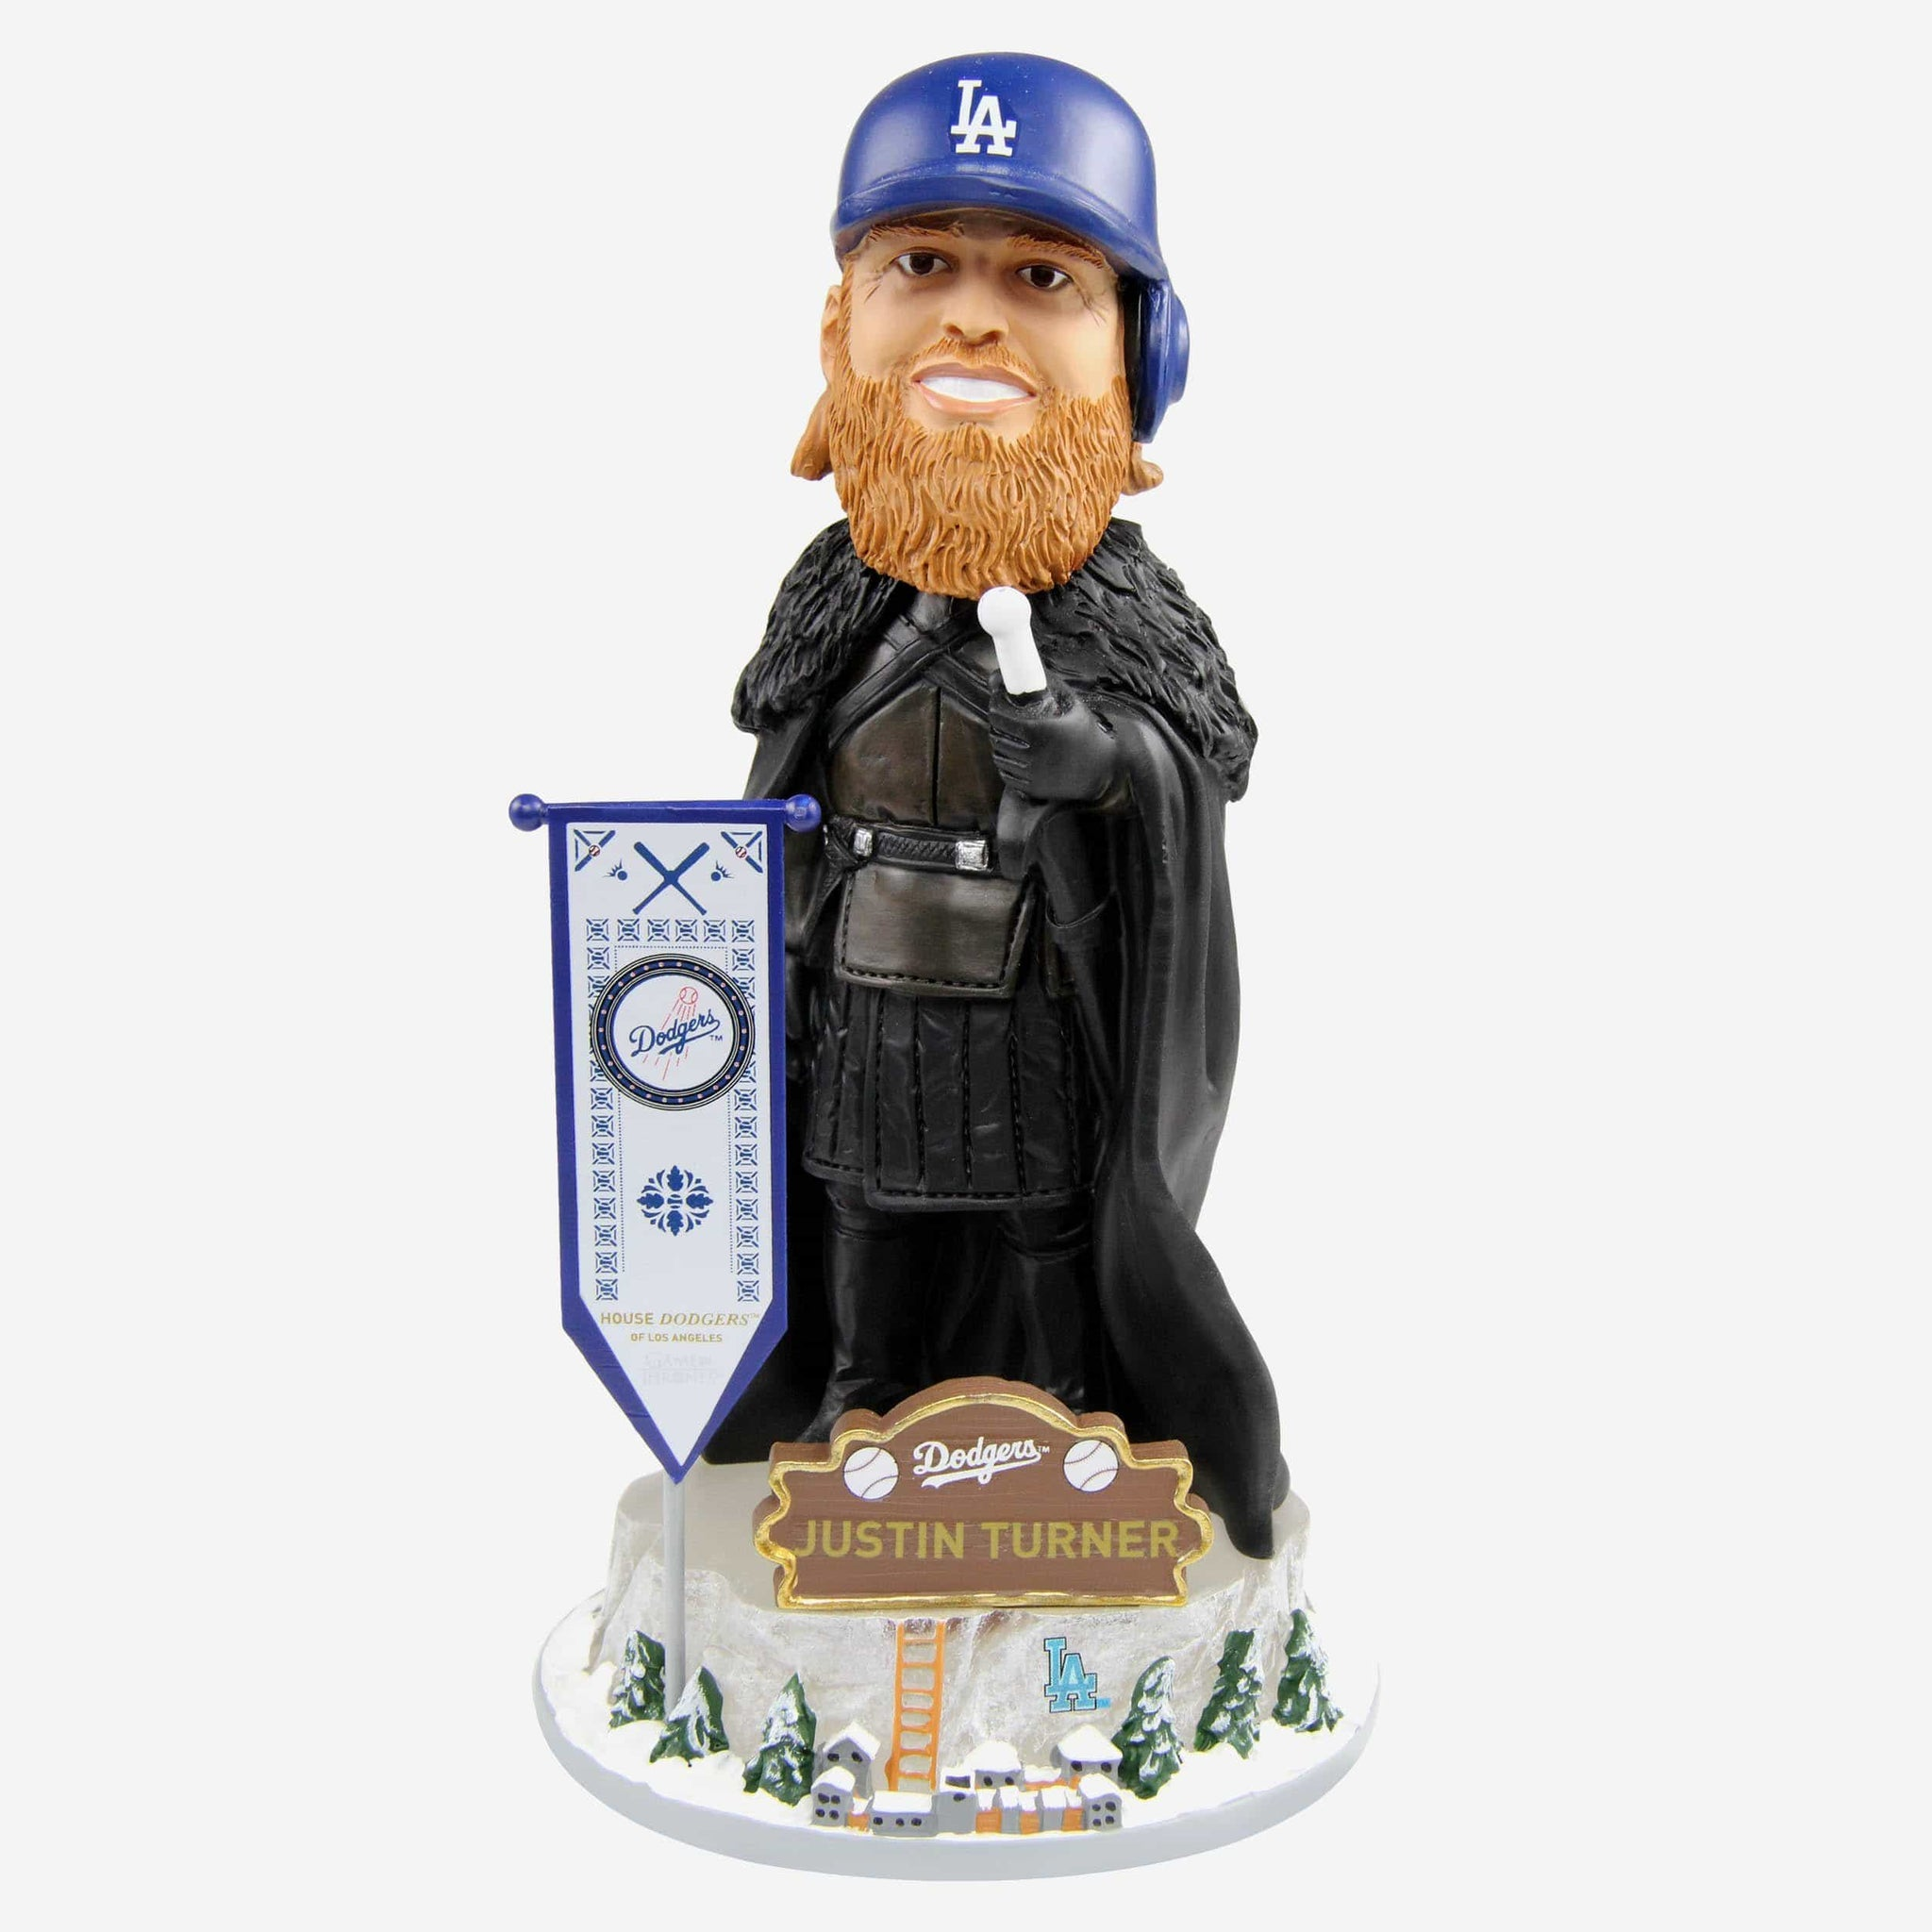 Los Angeles Dodgers Justin Turner Game Of Thrones Night's Watch Bobblehead FOCO - FOCO.com